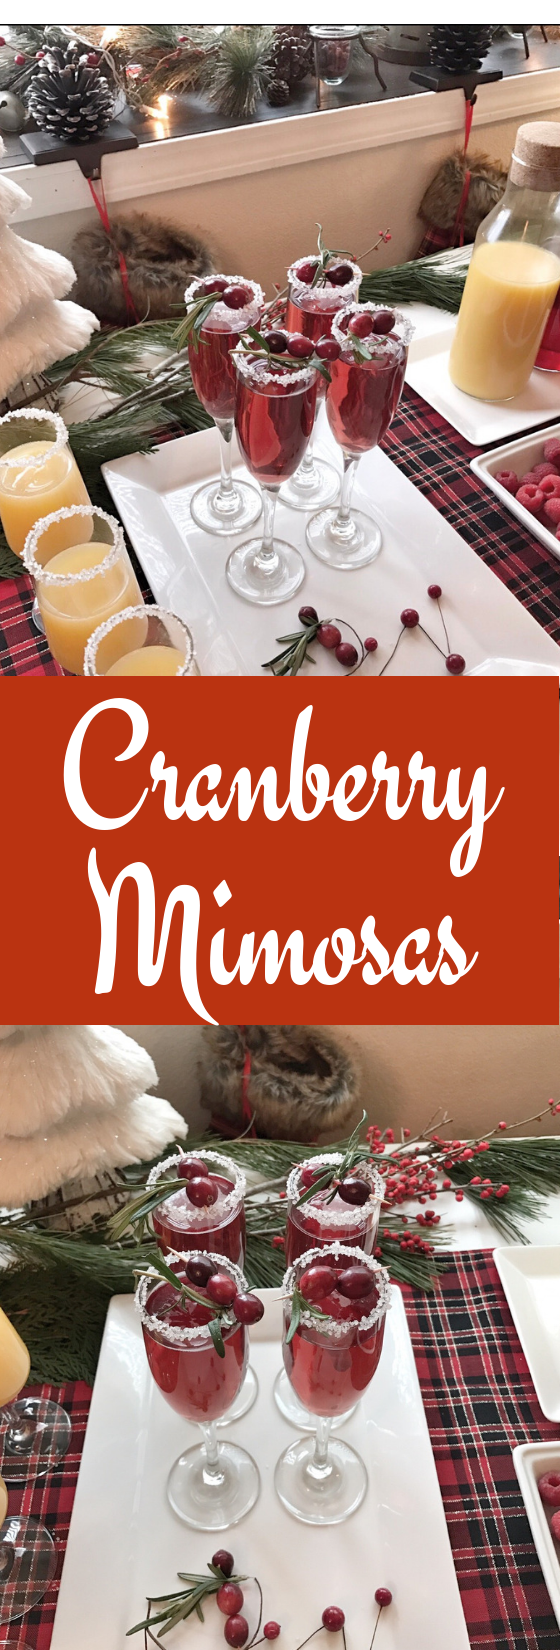 Cranberry Mimosas for Christmas brunch.